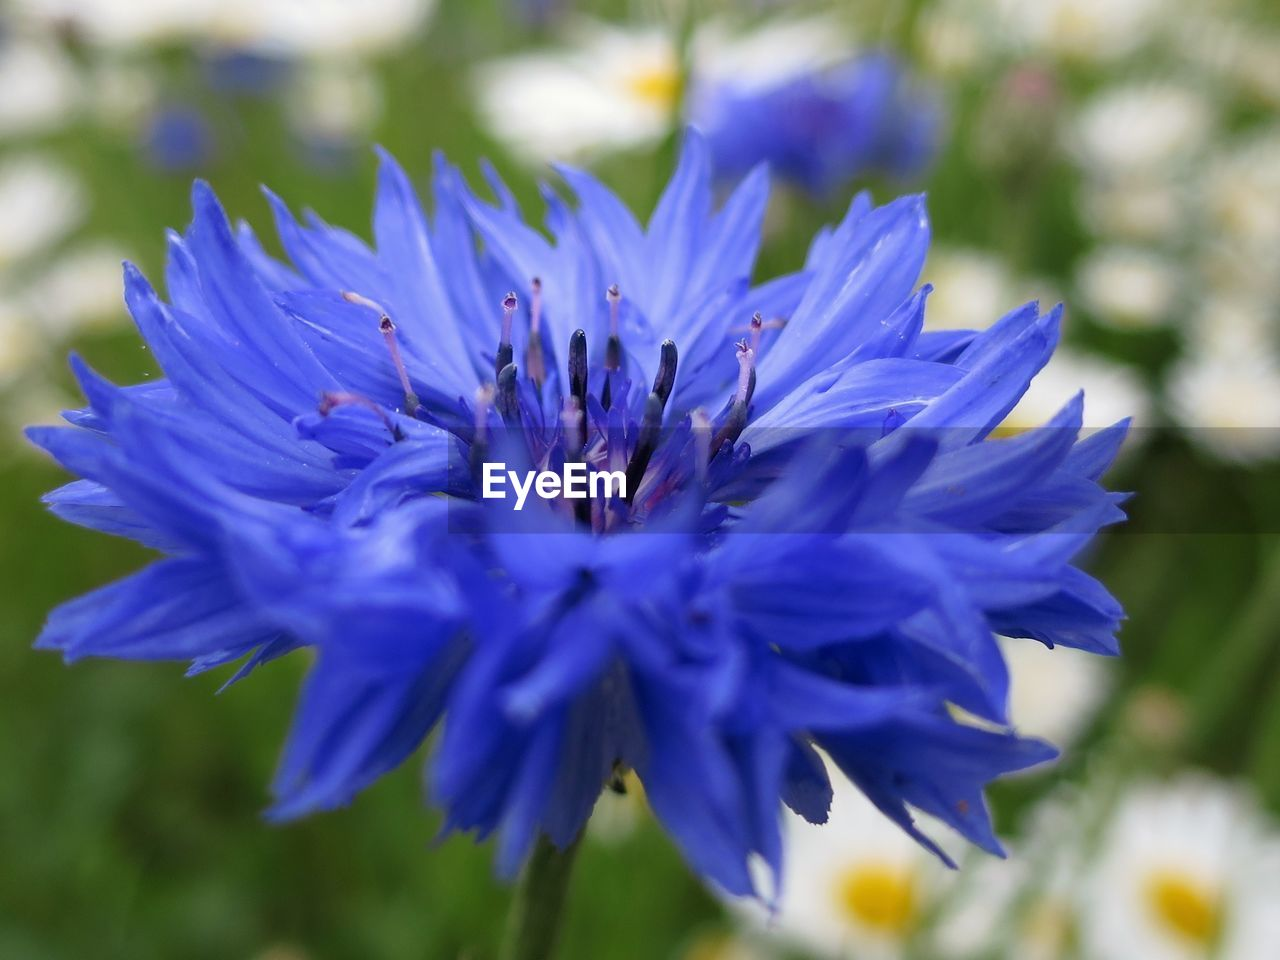 flower, nature, beauty in nature, petal, fragility, growth, freshness, plant, no people, purple, blue, flower head, outdoors, close-up, focus on foreground, blooming, day